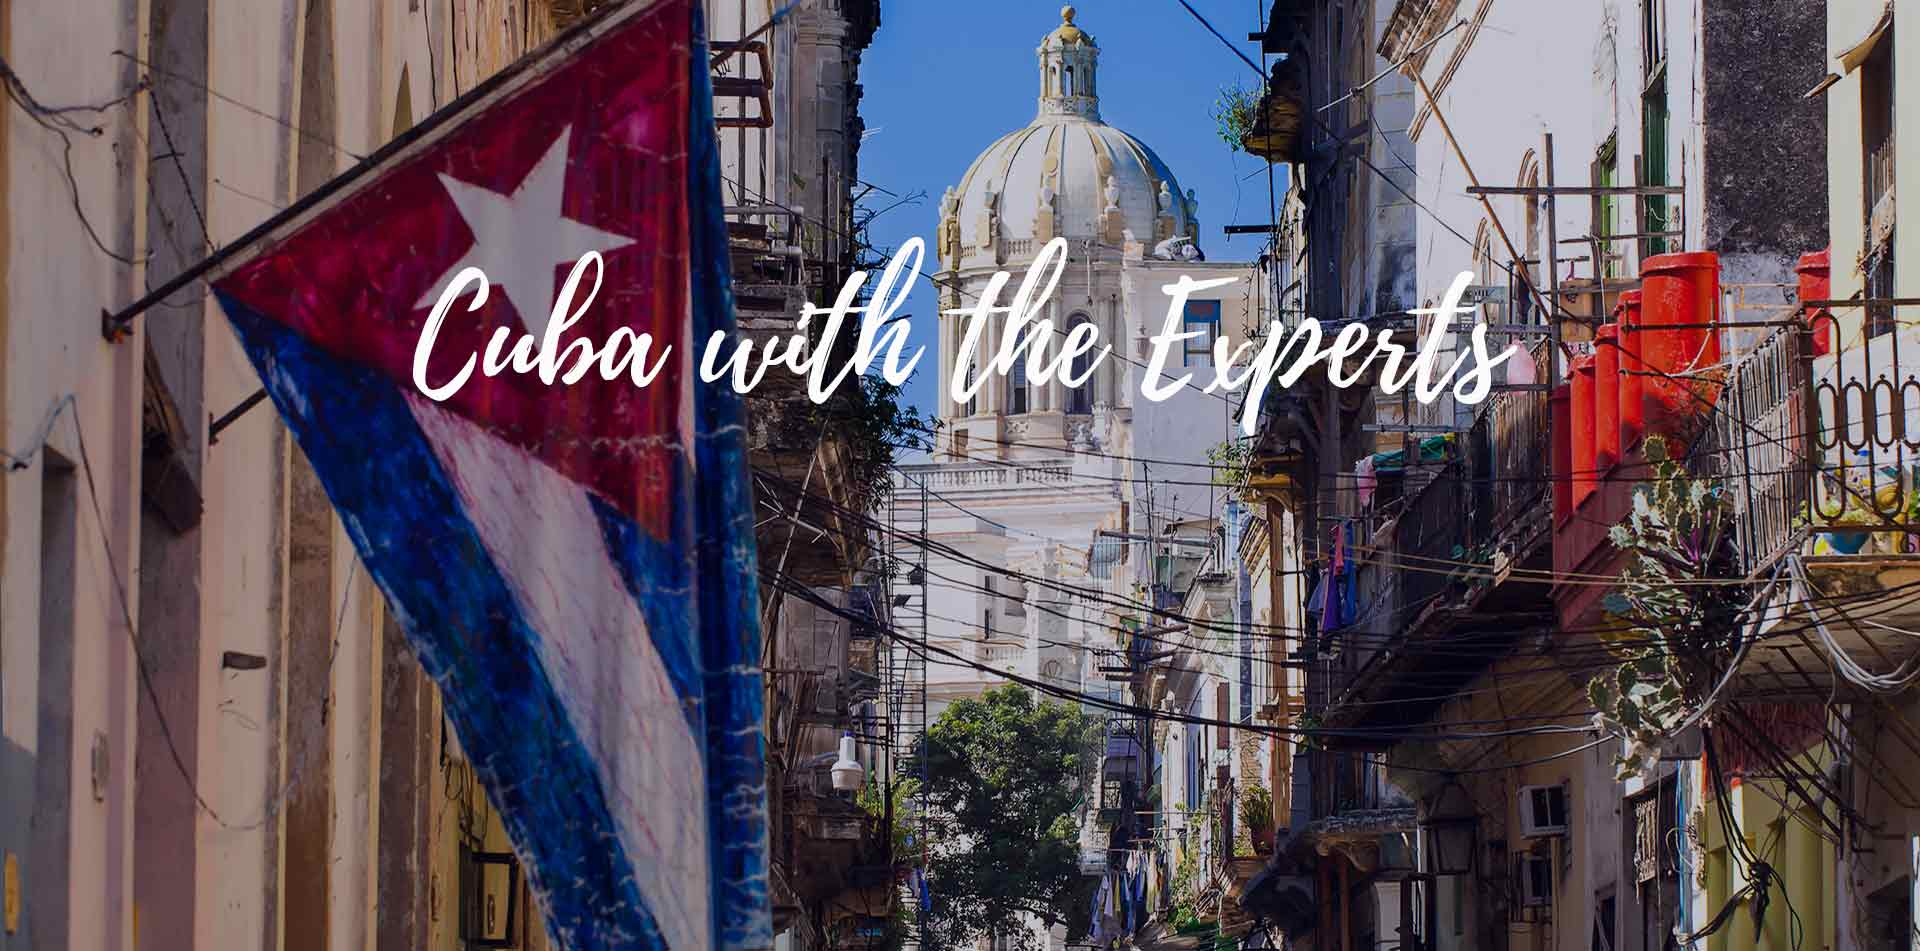 North America Caribbean Havana Cuba with the experts Cuban flag old street El Capitolio view - luxury vacation destinations